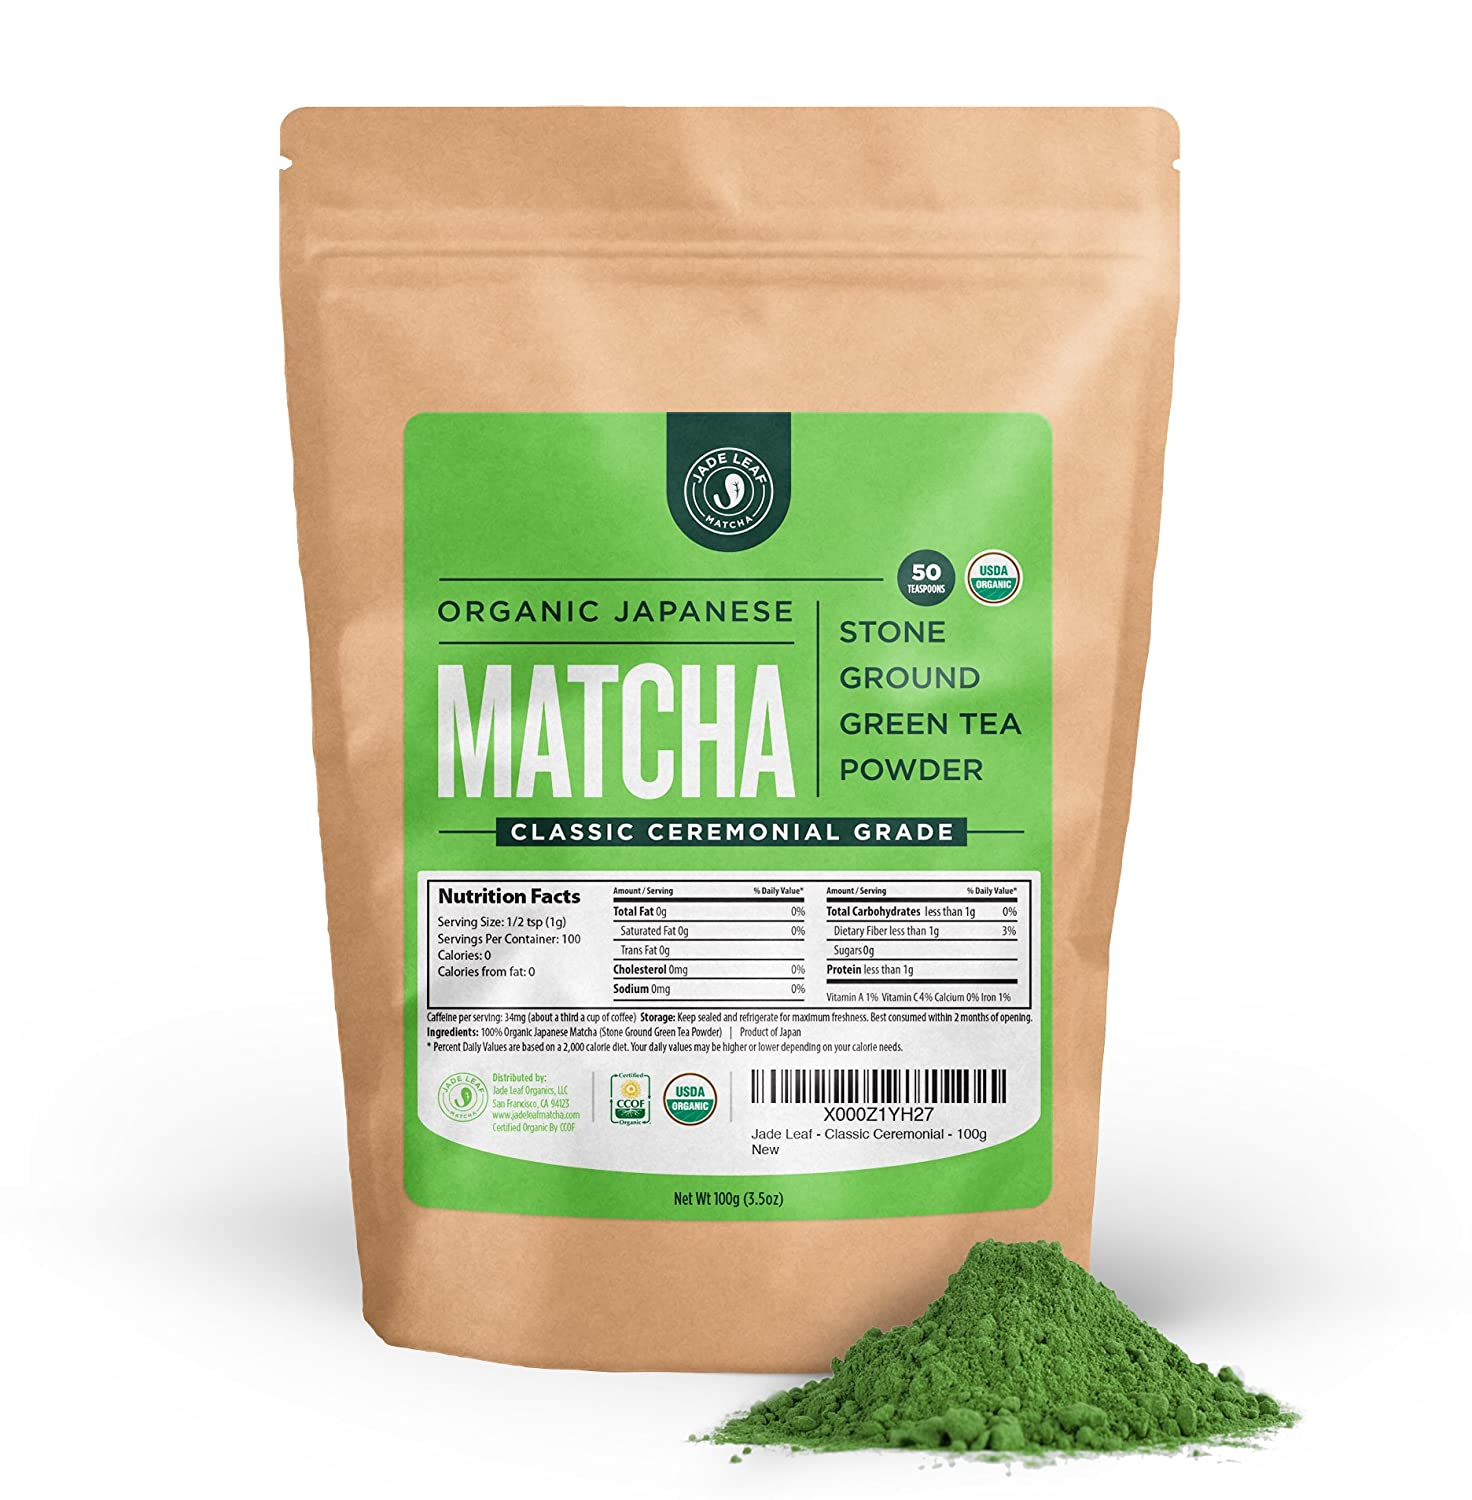 Matcha Green Tea Powder - Ceremonial Grade